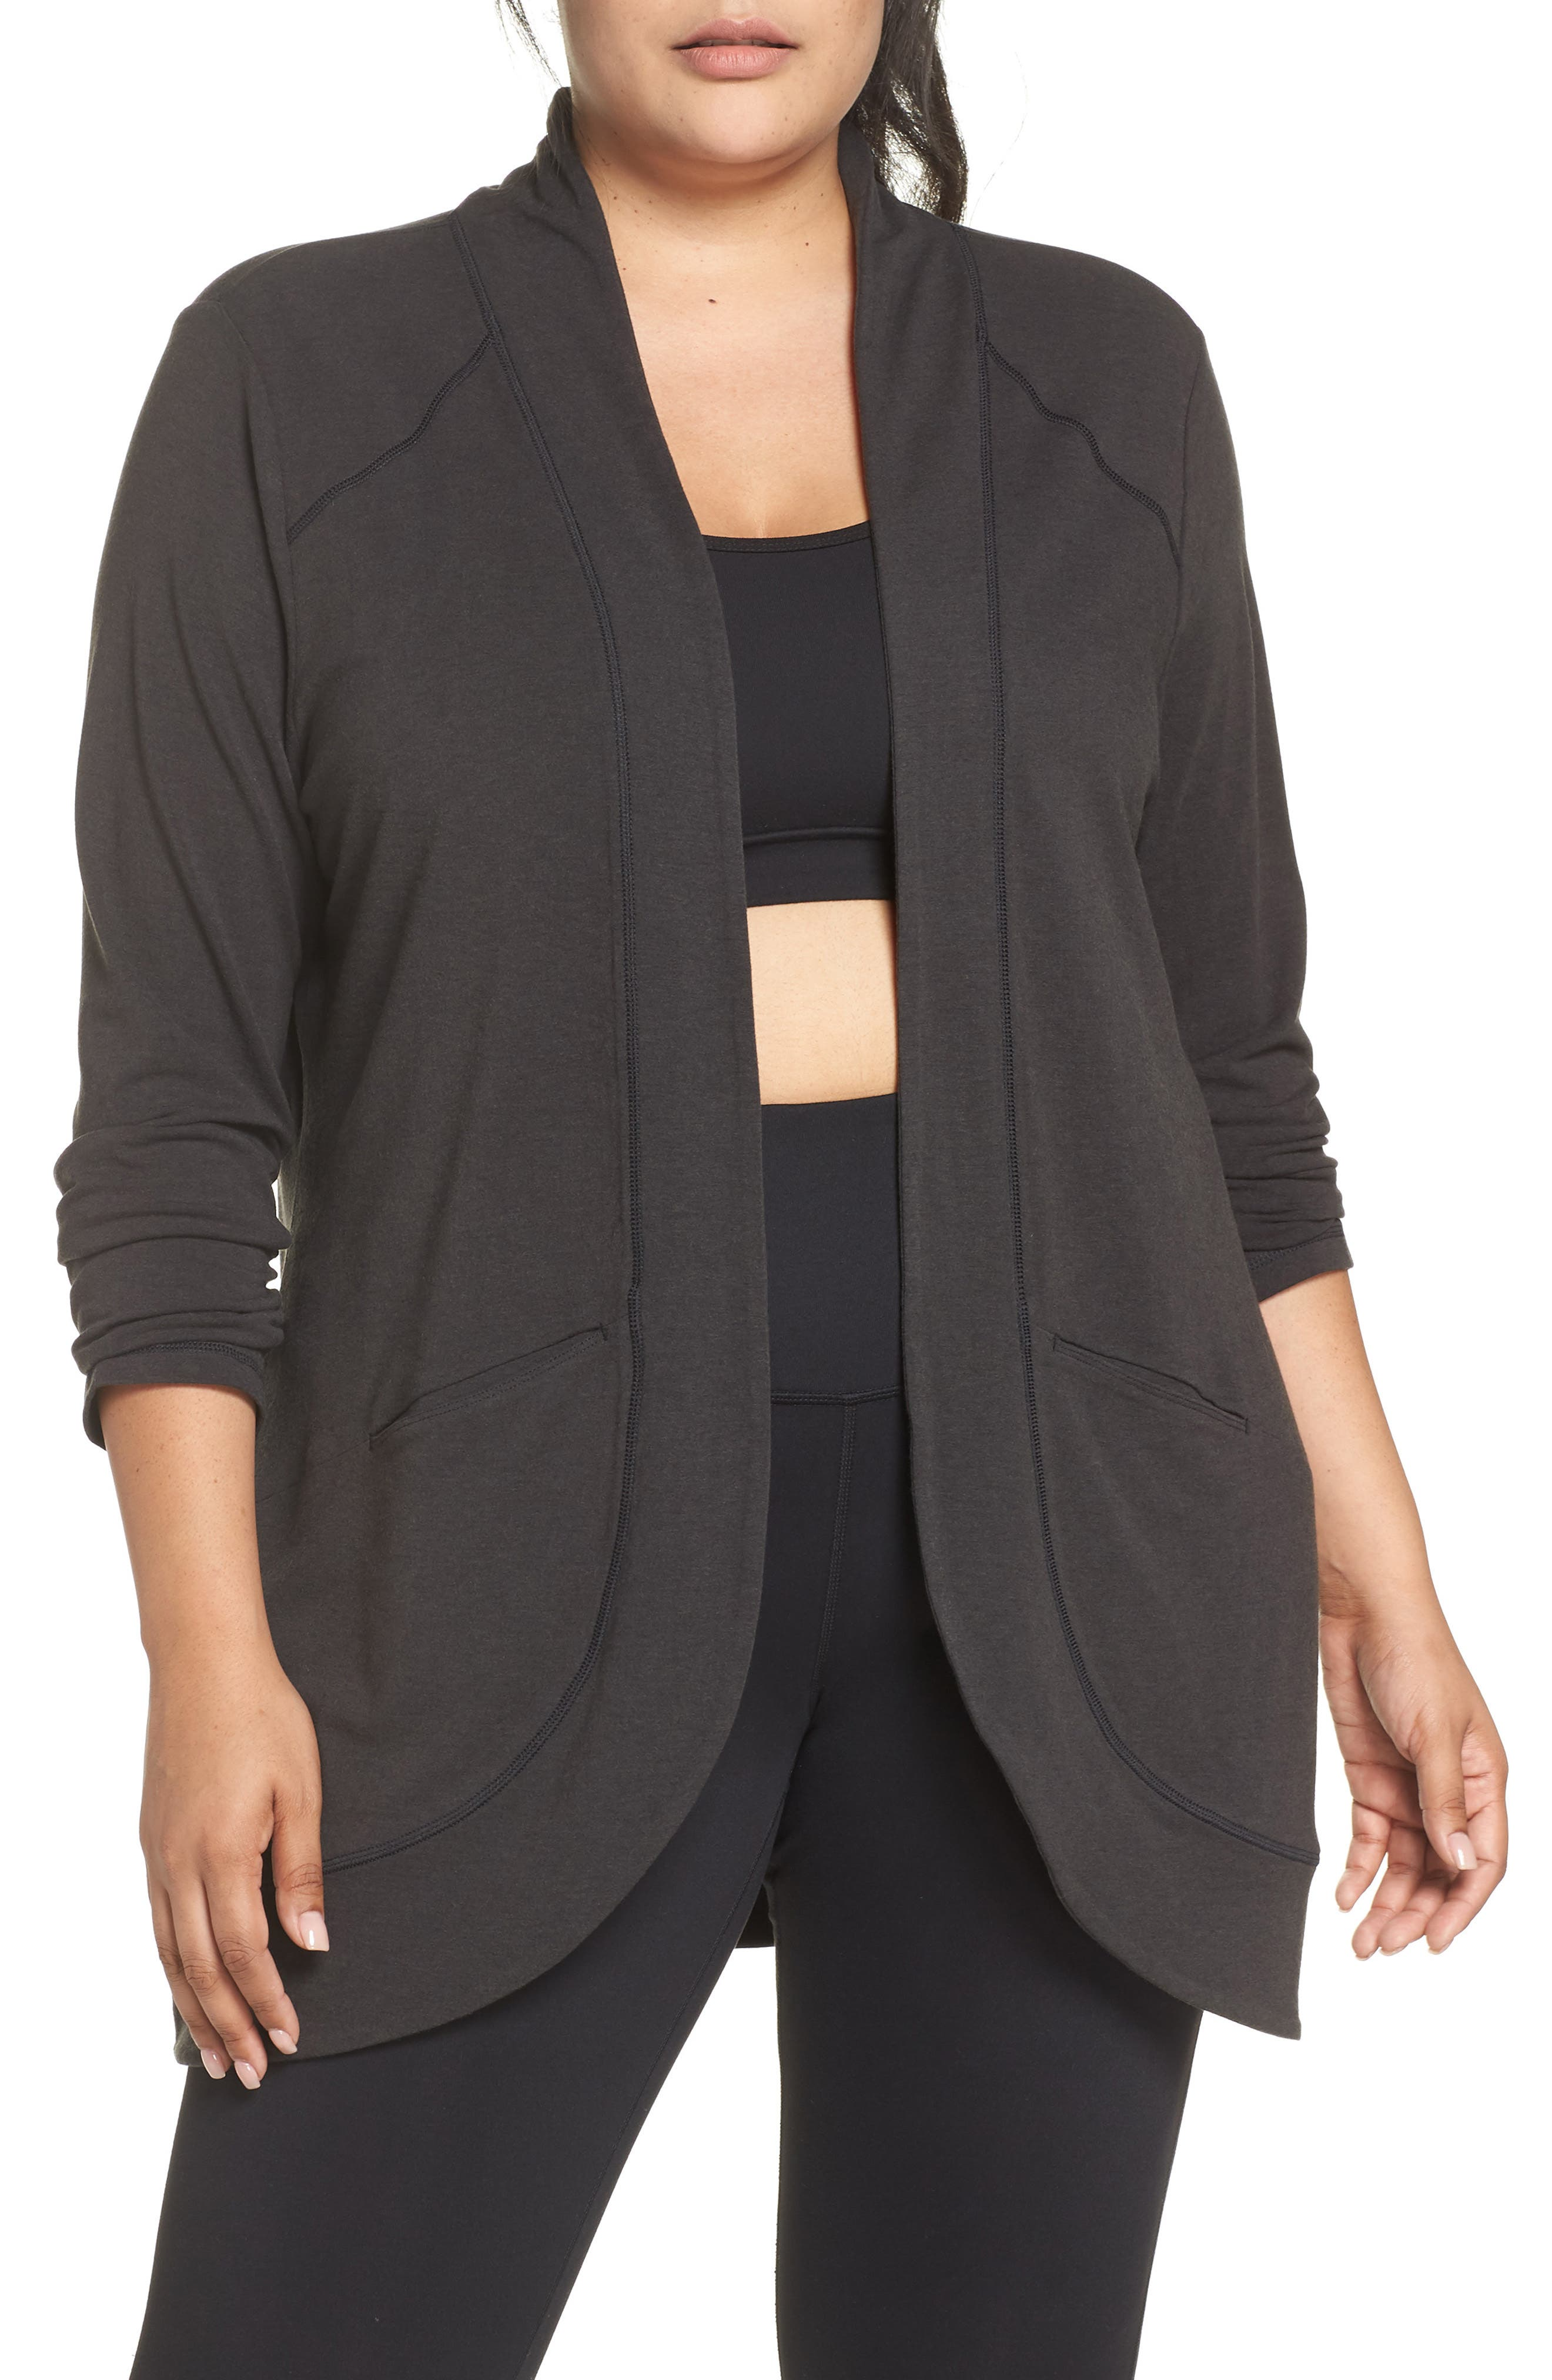 French Terry Cardigan,                         Main,                         color, CHARCOAL BLACK / NAVY